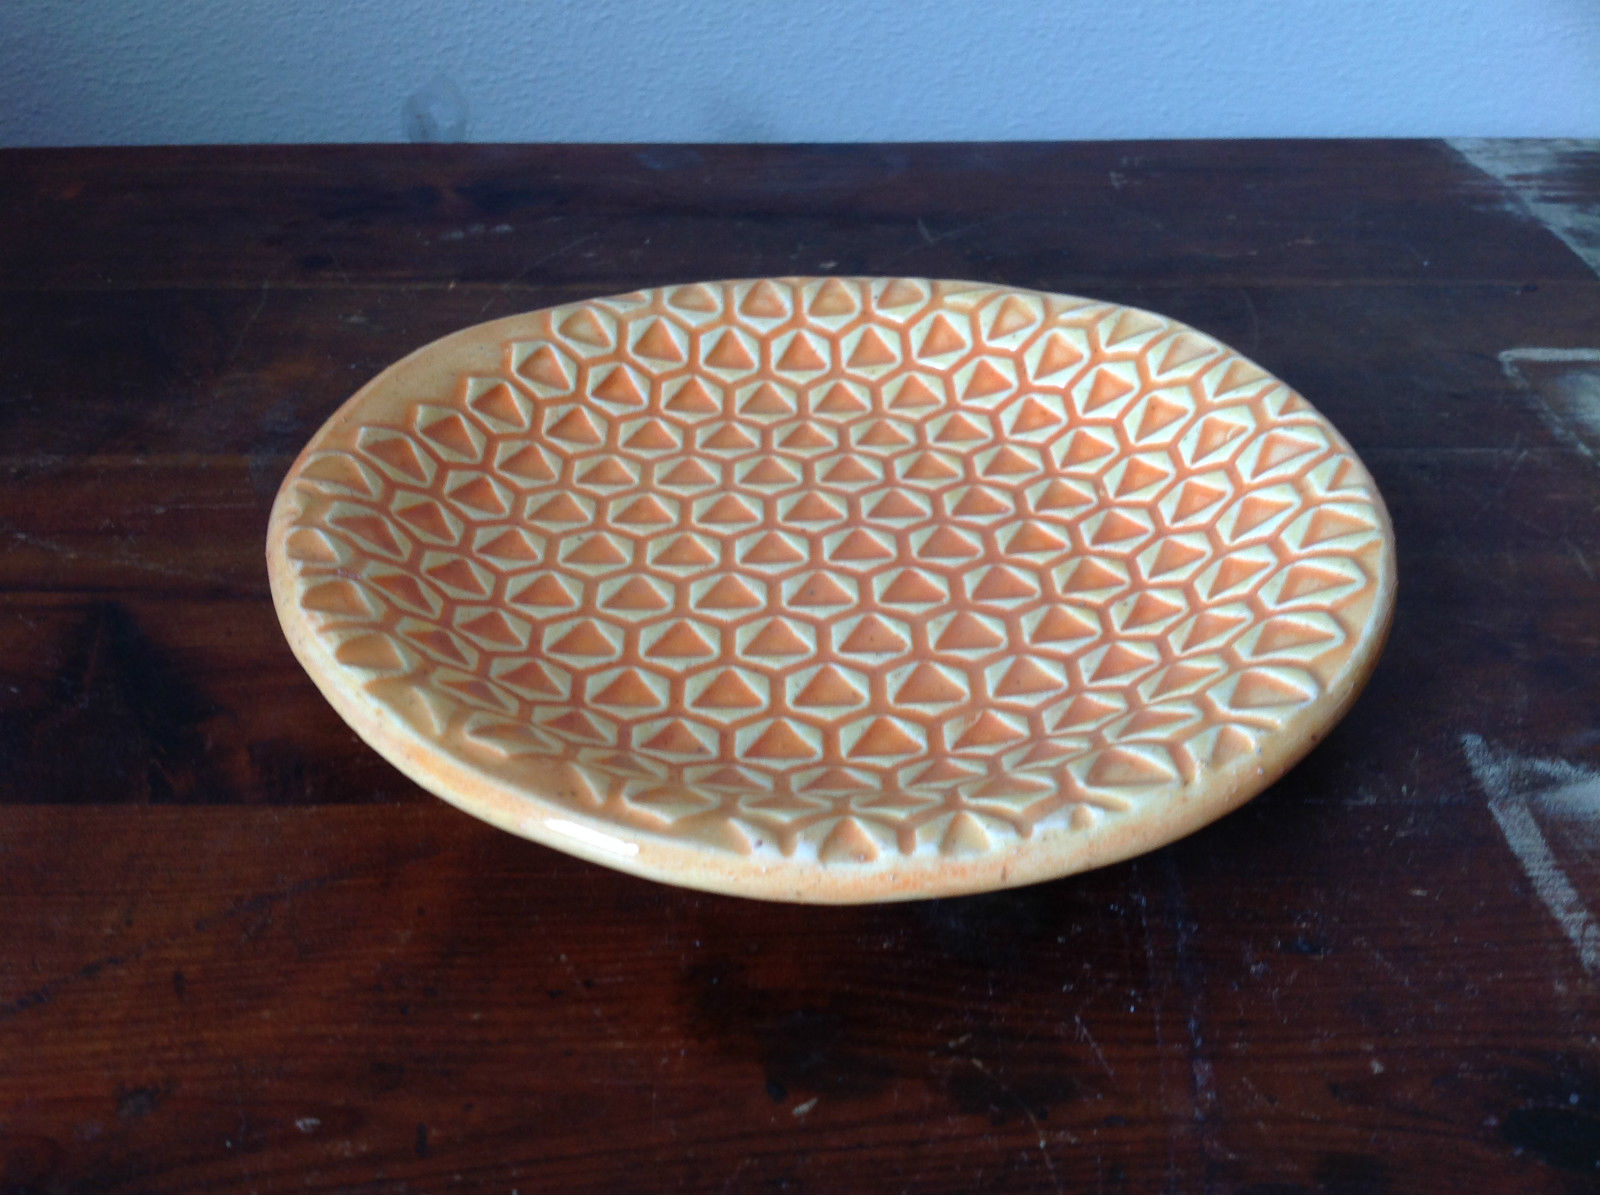 Orange Ceramic Artisan Handcrafted Plate Saucer Interesting Triangular Pattern